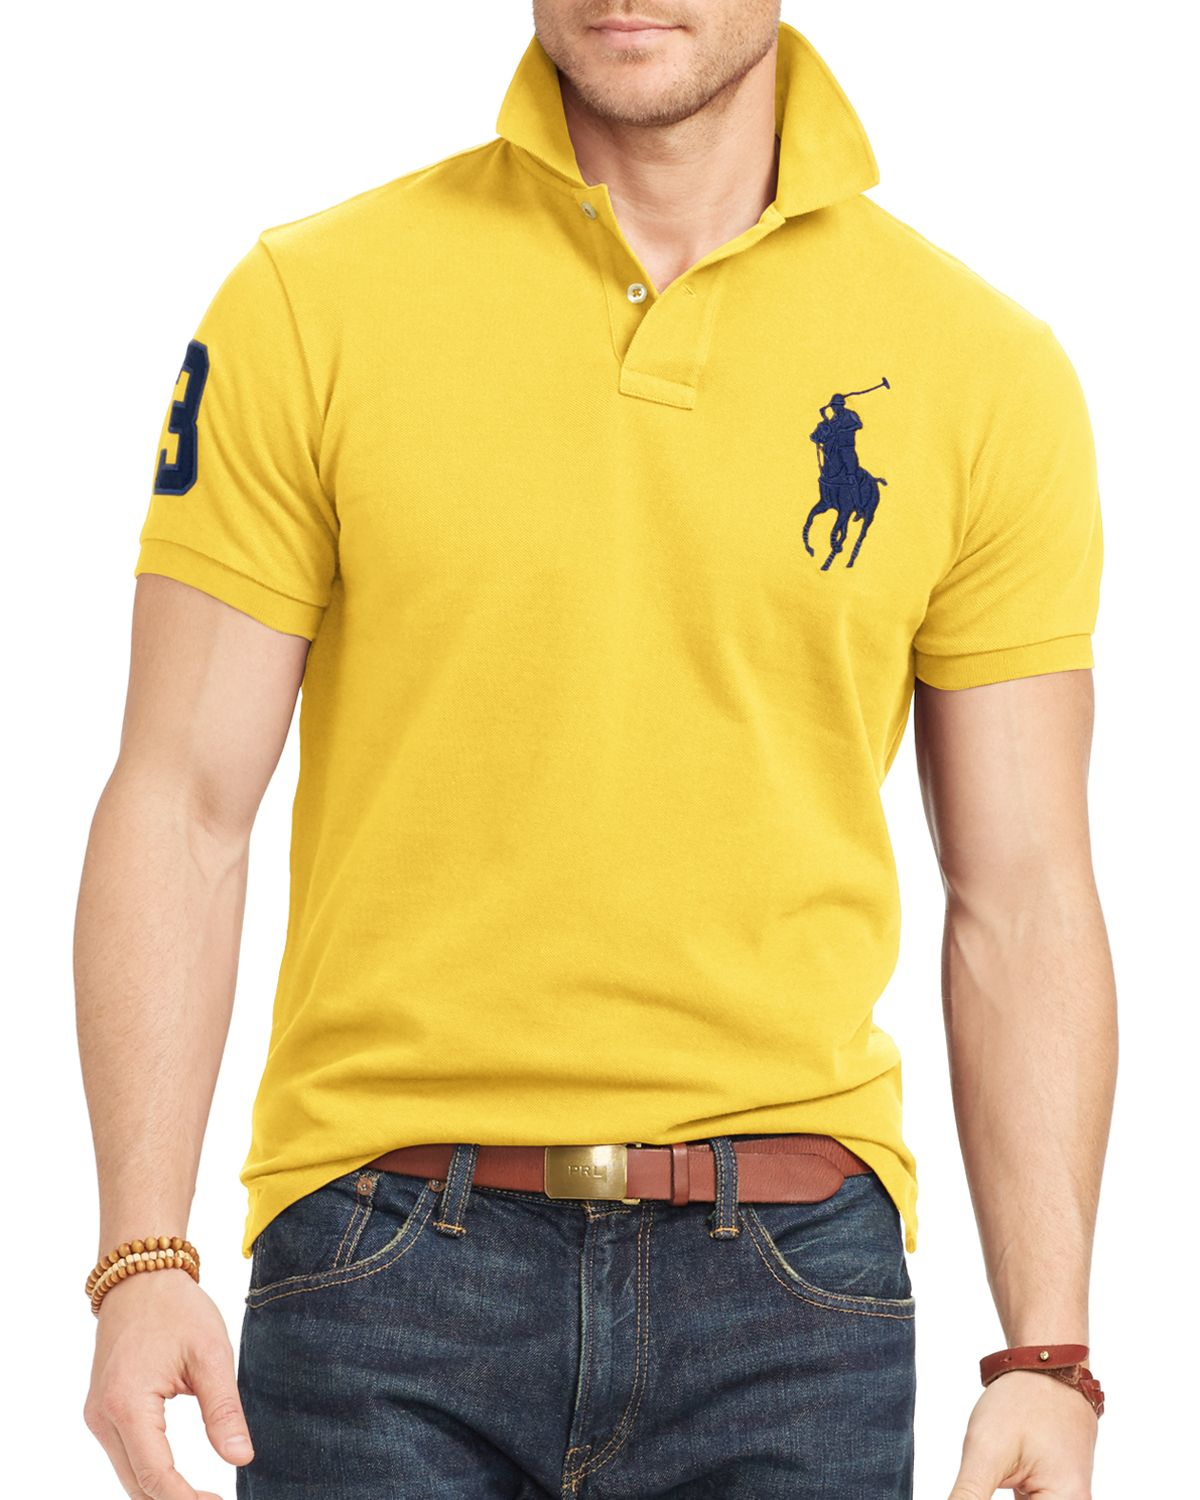 Ralph lauren polo custom fit big pony mesh slim fit polo for Ralph lauren custom fit mesh polo shirt